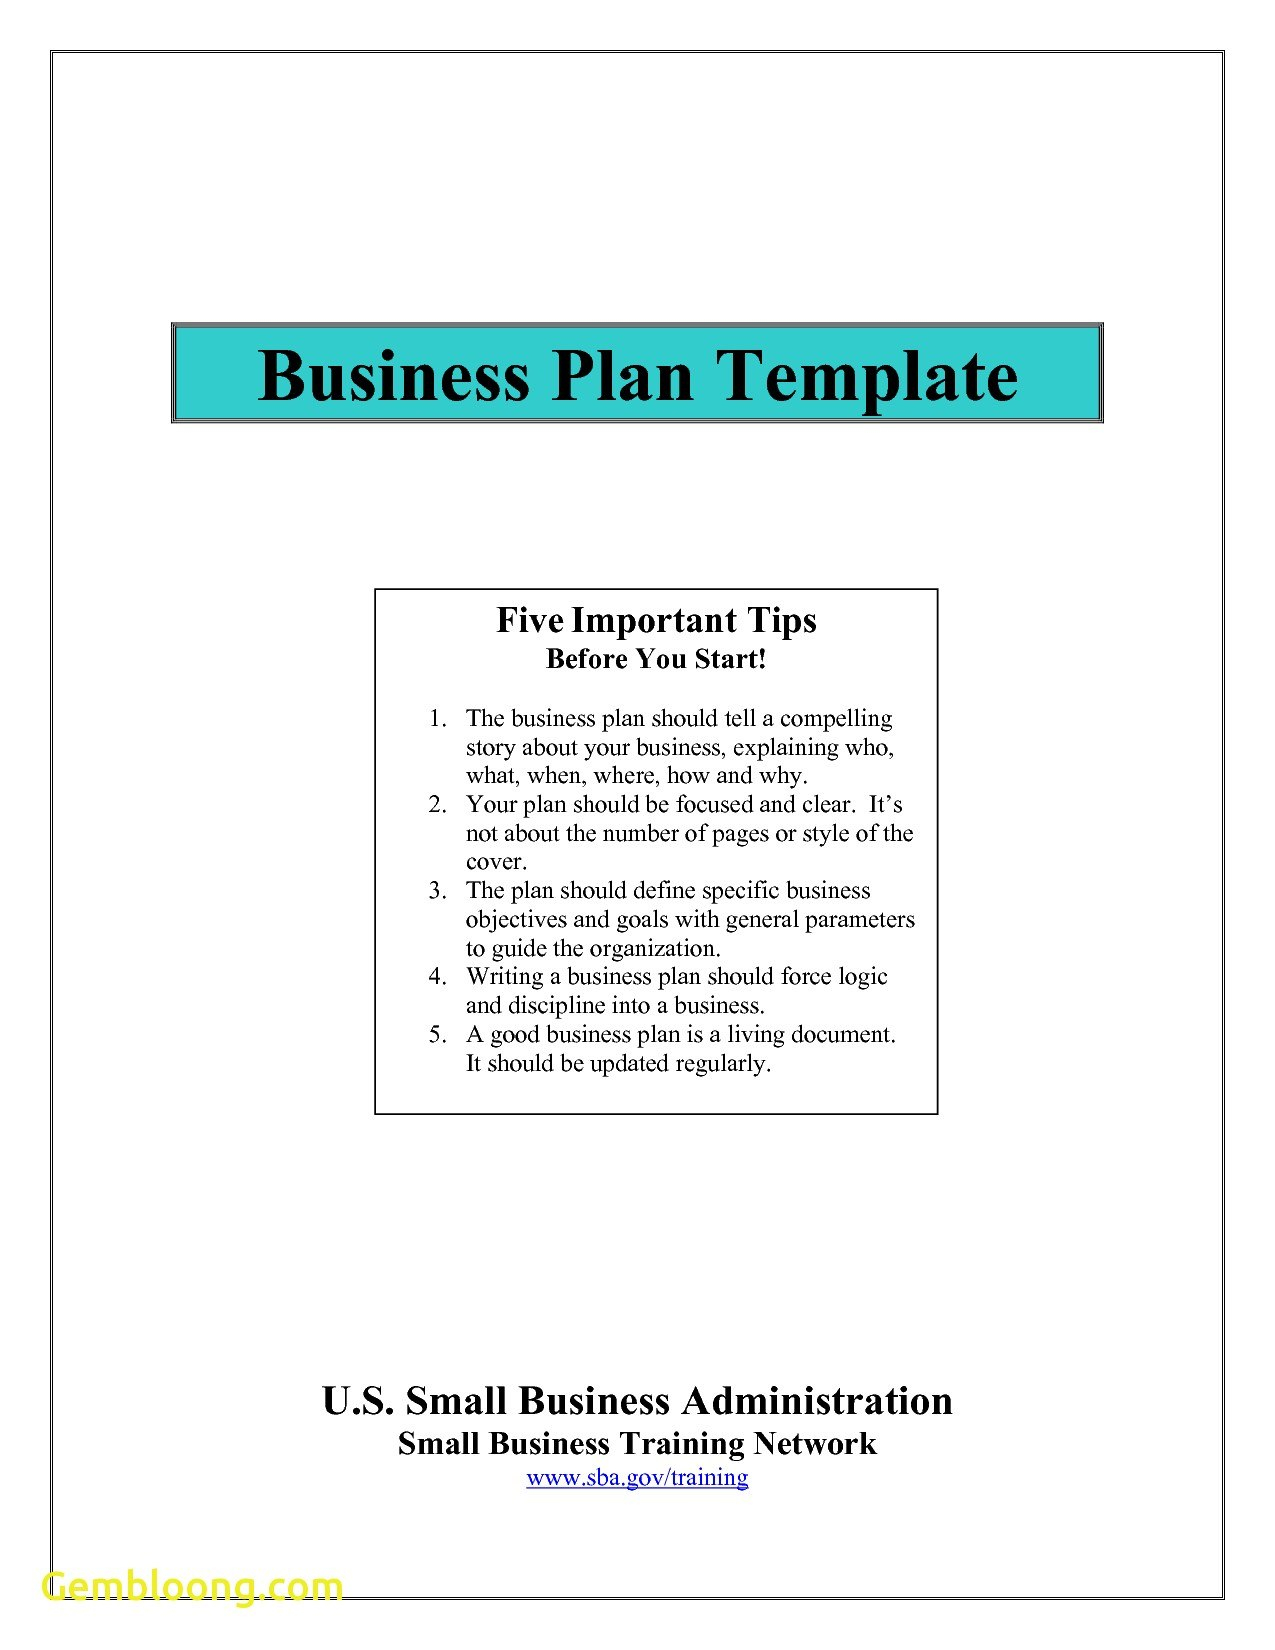 Simple Business Plan Is Best Picture Samplelate Free Very Pertaining To Very Simple Business Plan Template